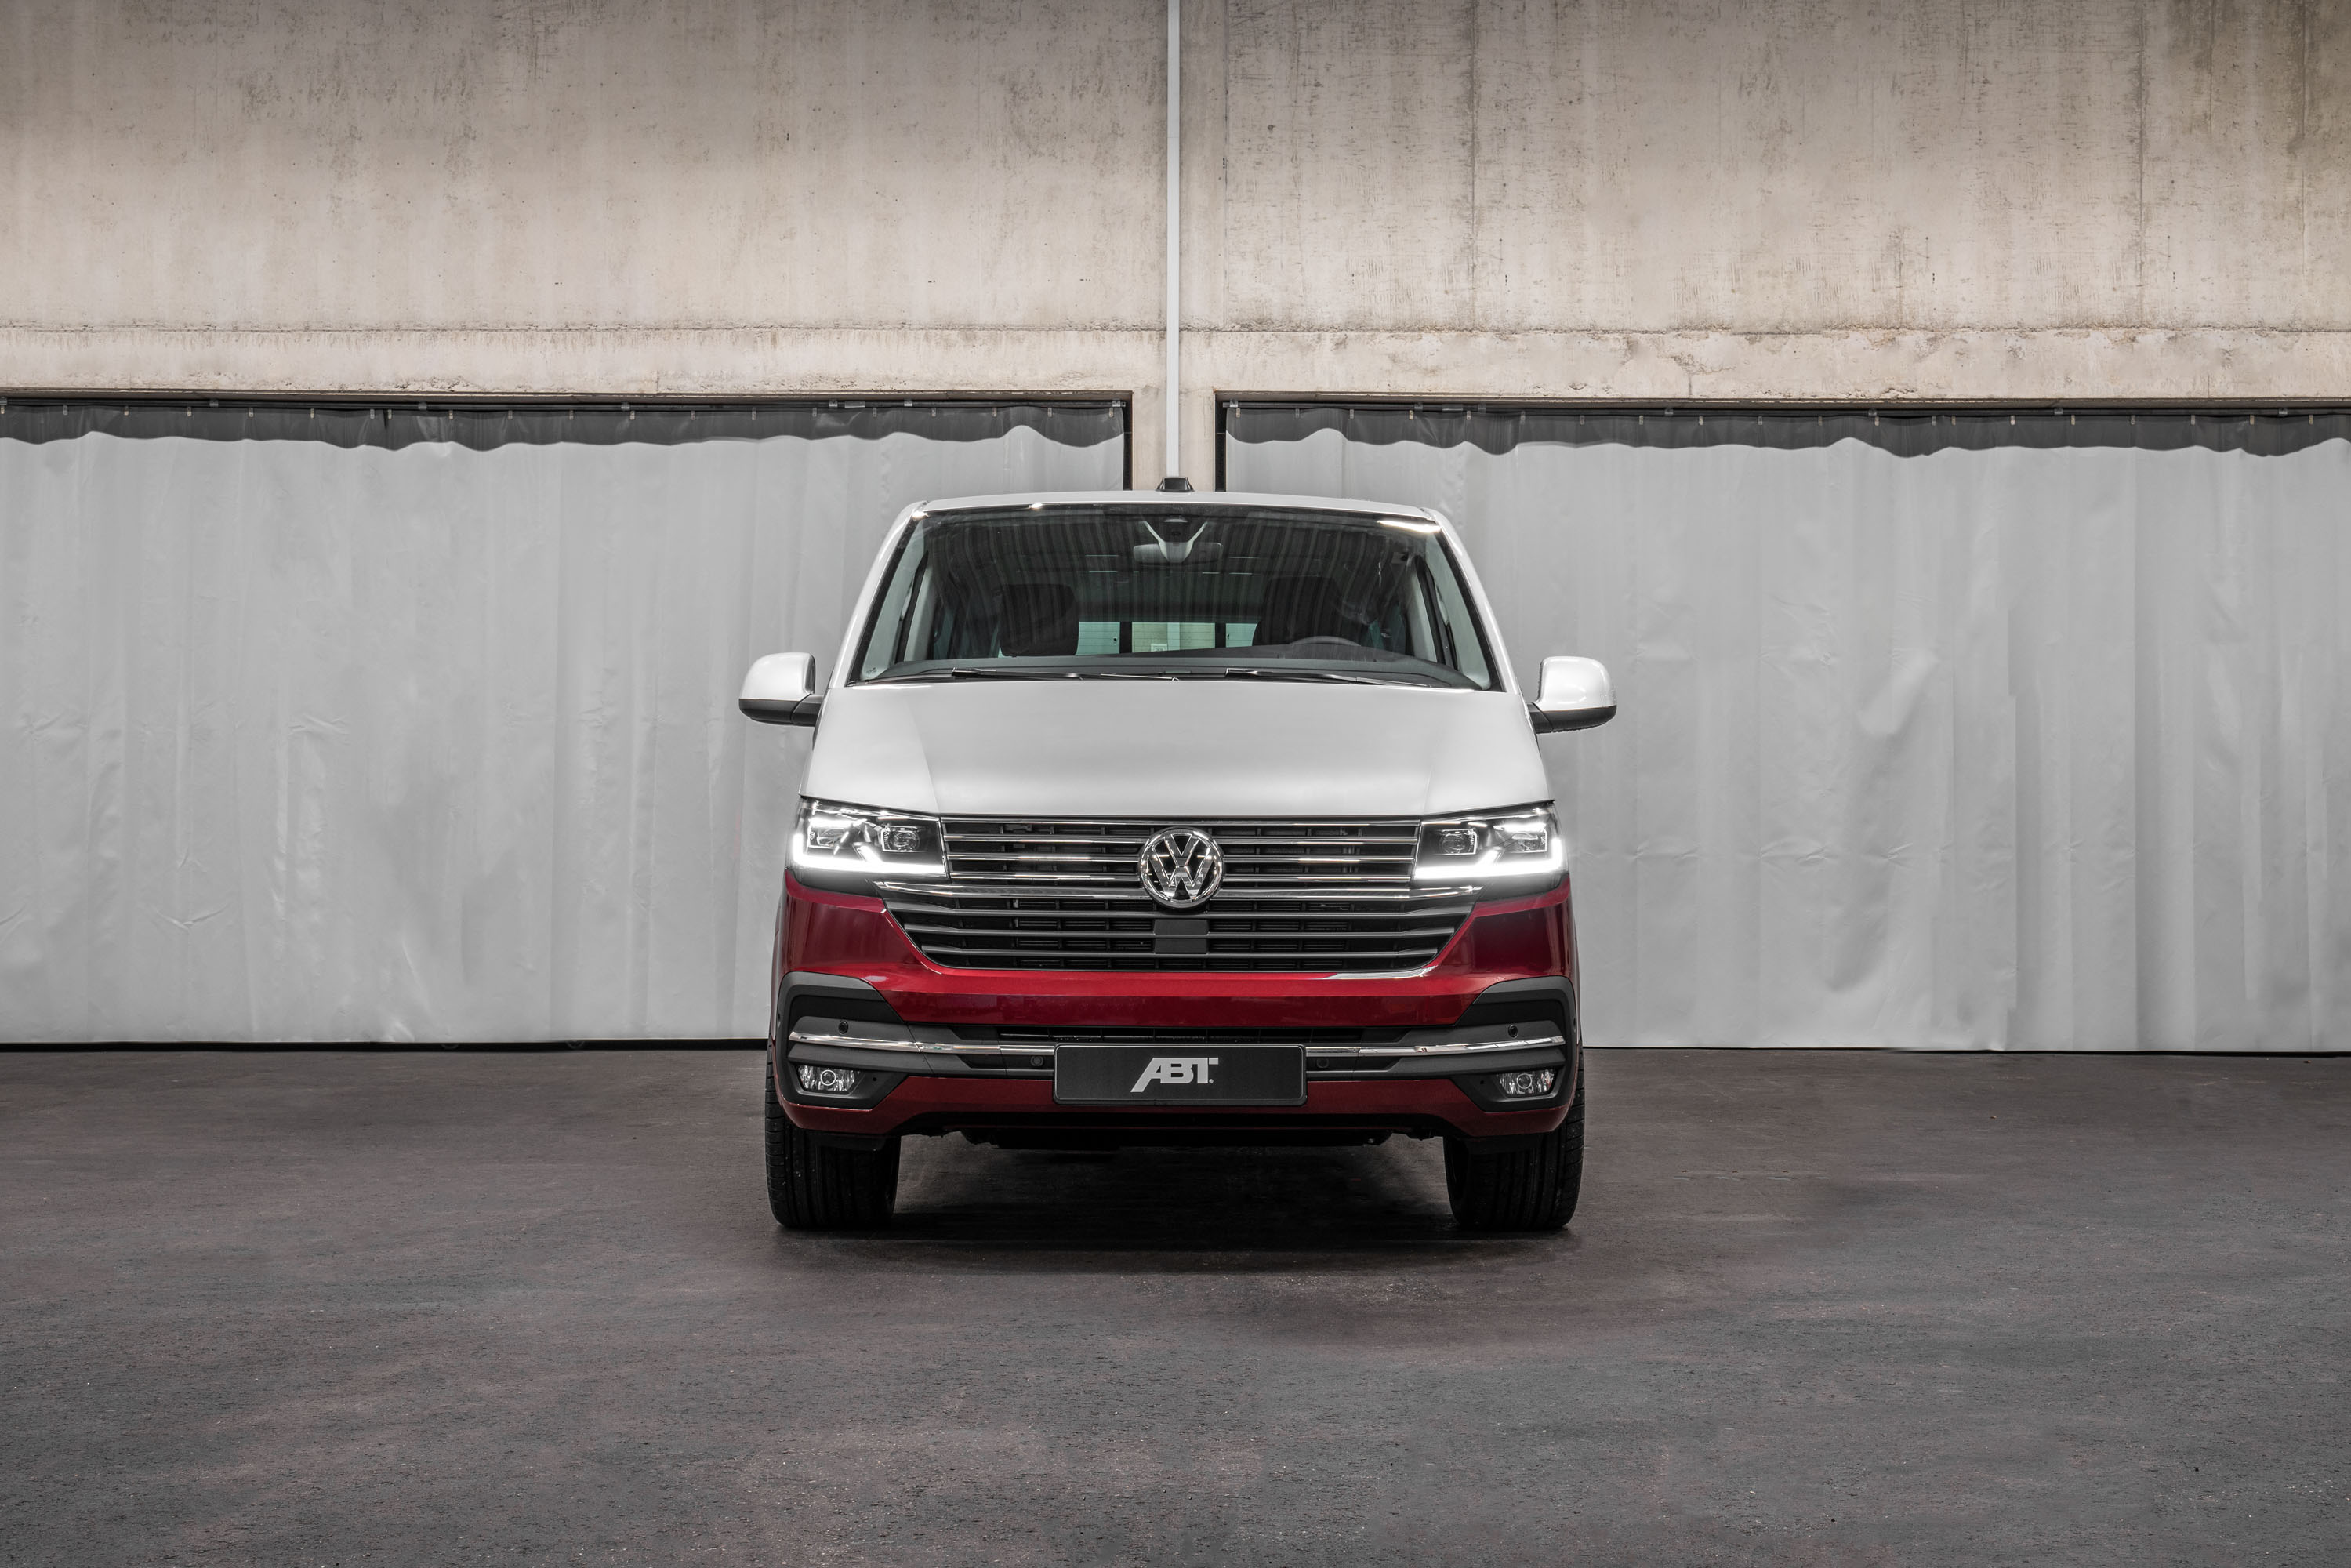 ABT VW T6.1 photo #1